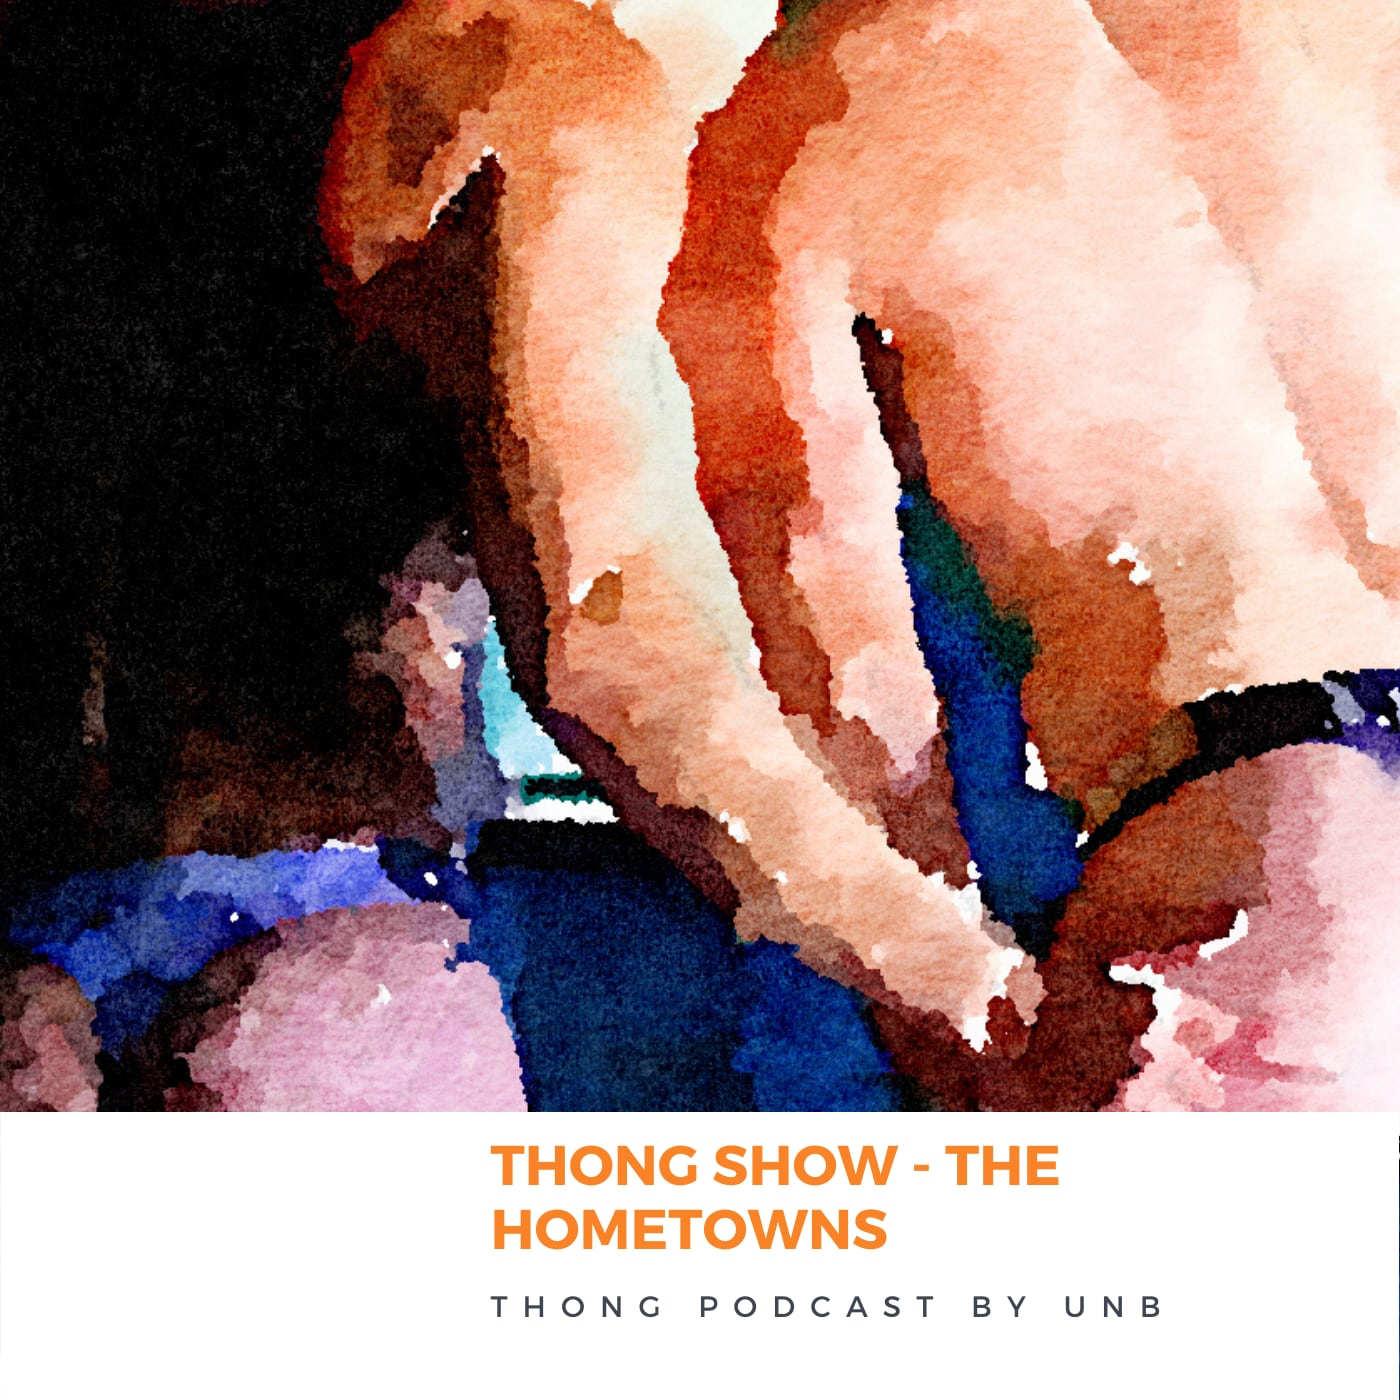 Brief Talk Podcast - Thong Show - The Hometown